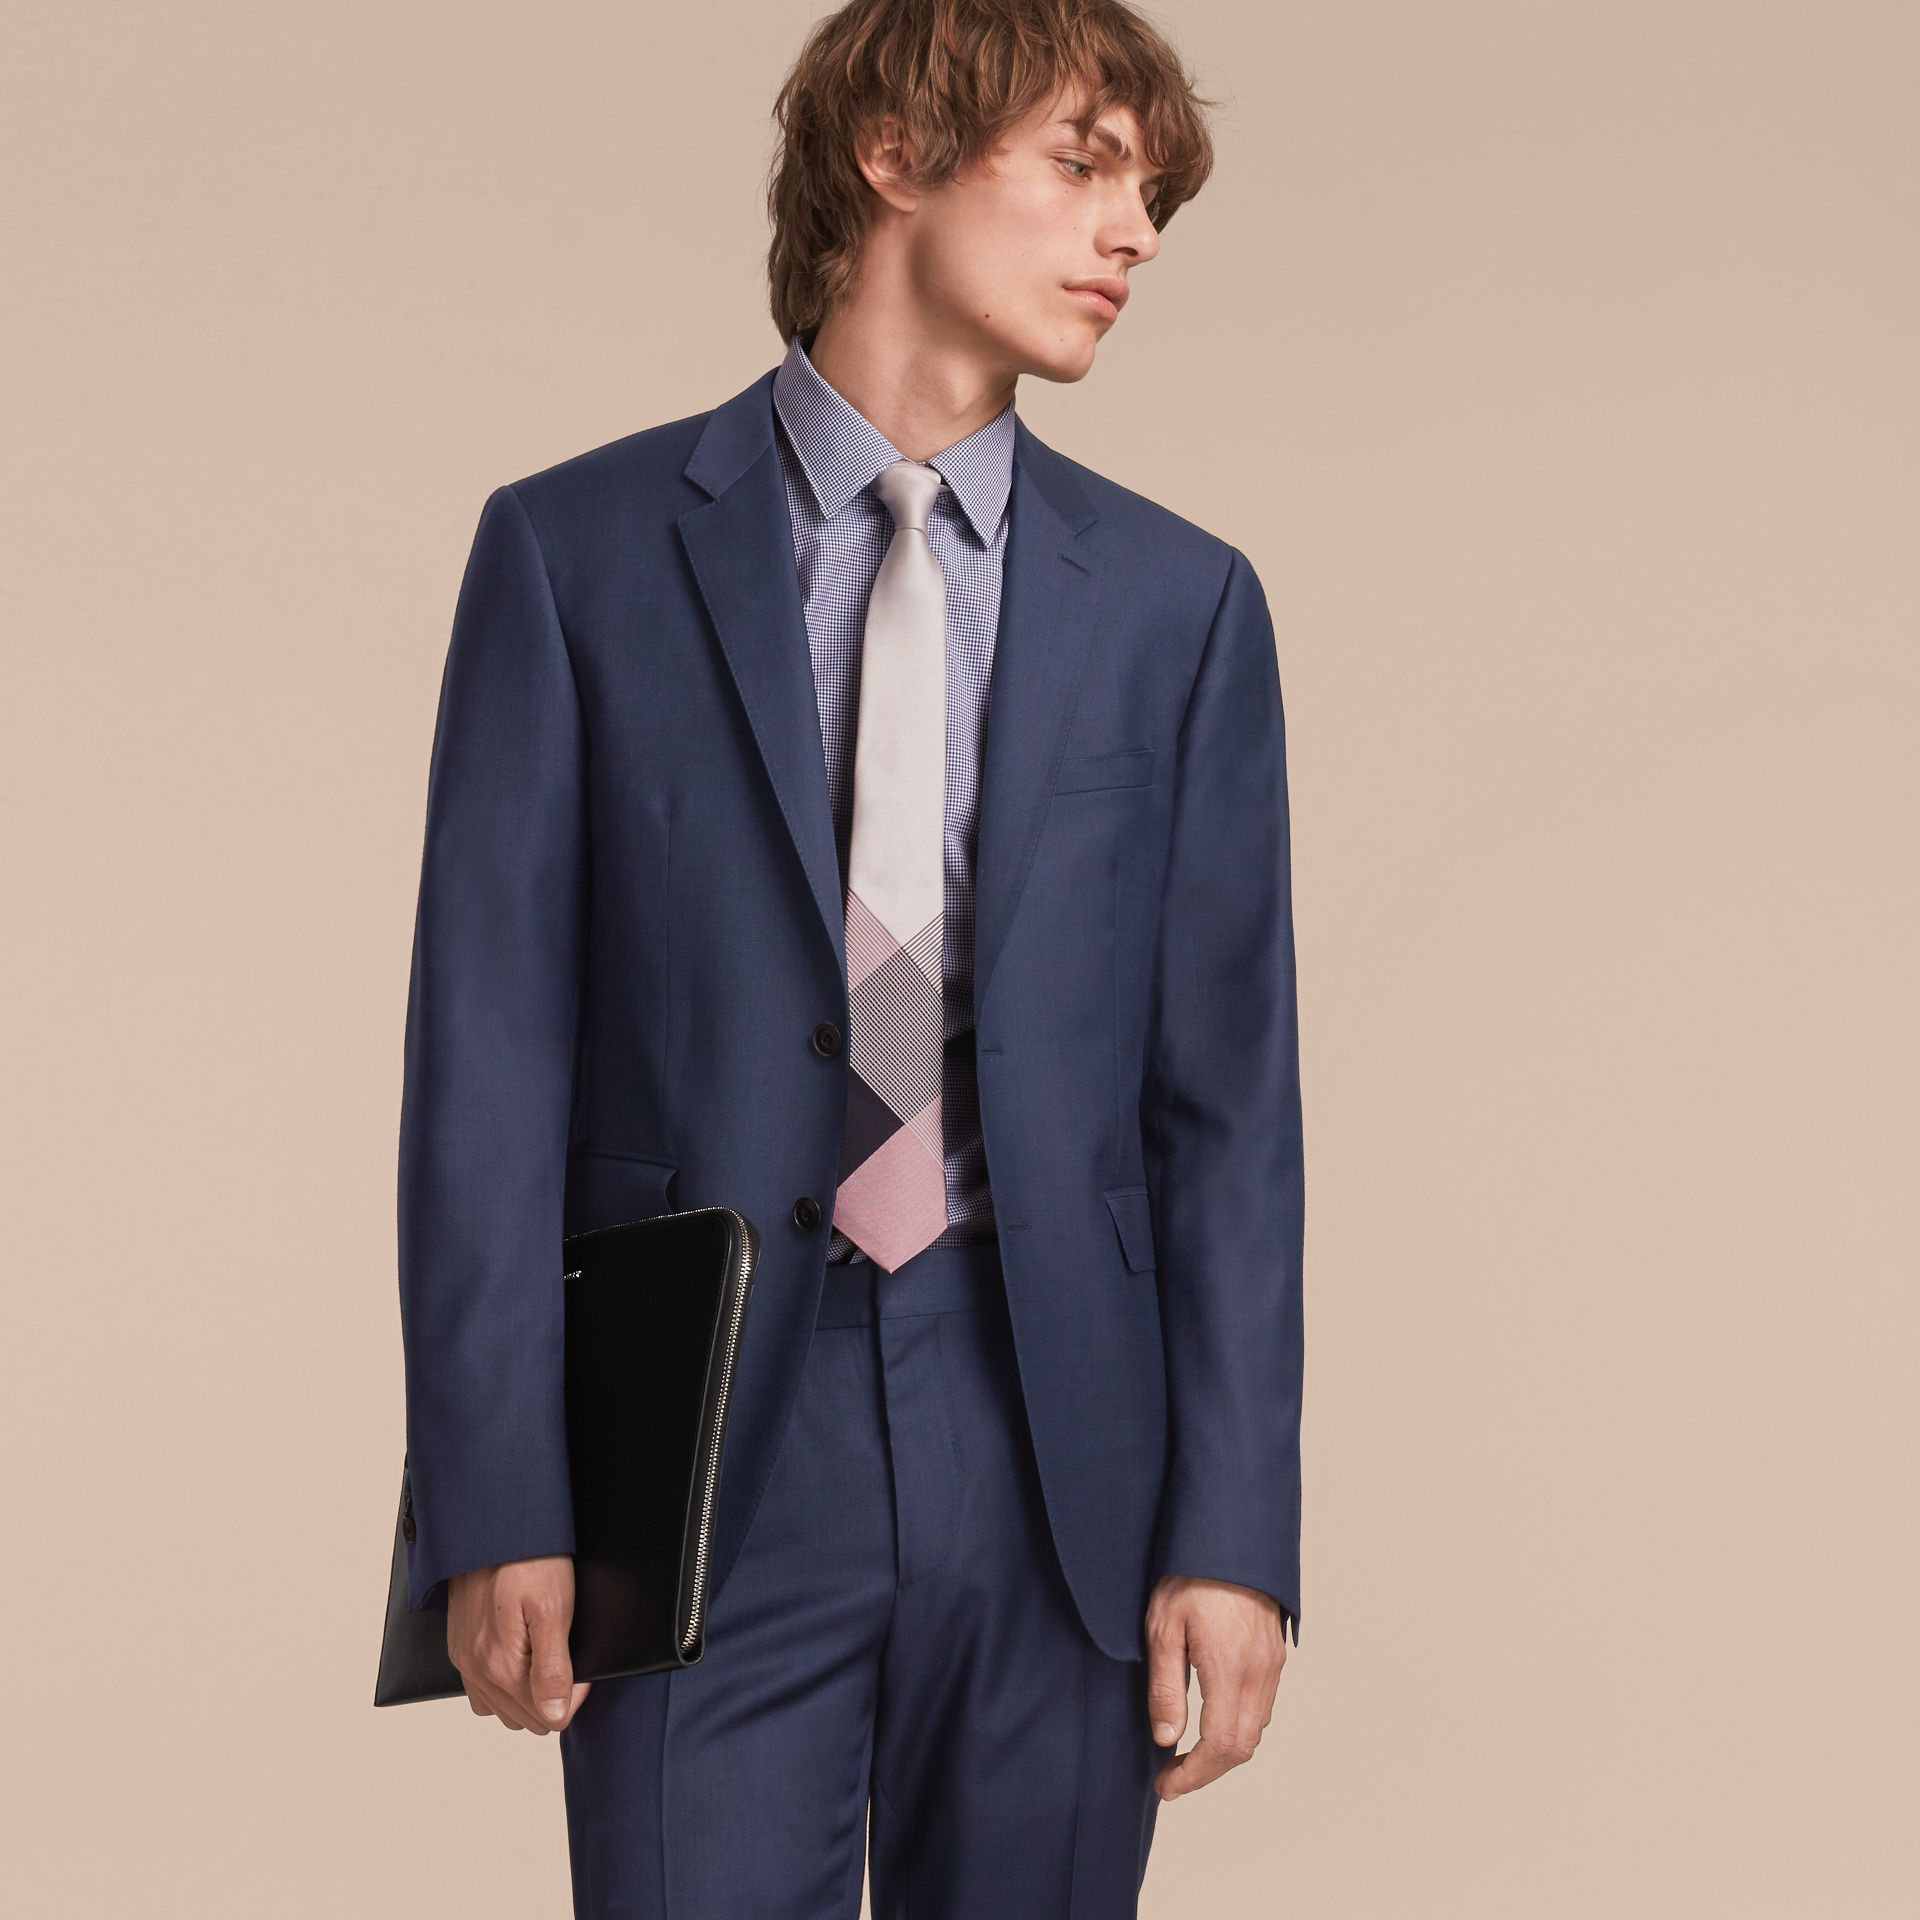 Modern Cut Gingham Check Silk Jacquard Tie in Apricot Pink - Men | Burberry Singapore - gallery image 3